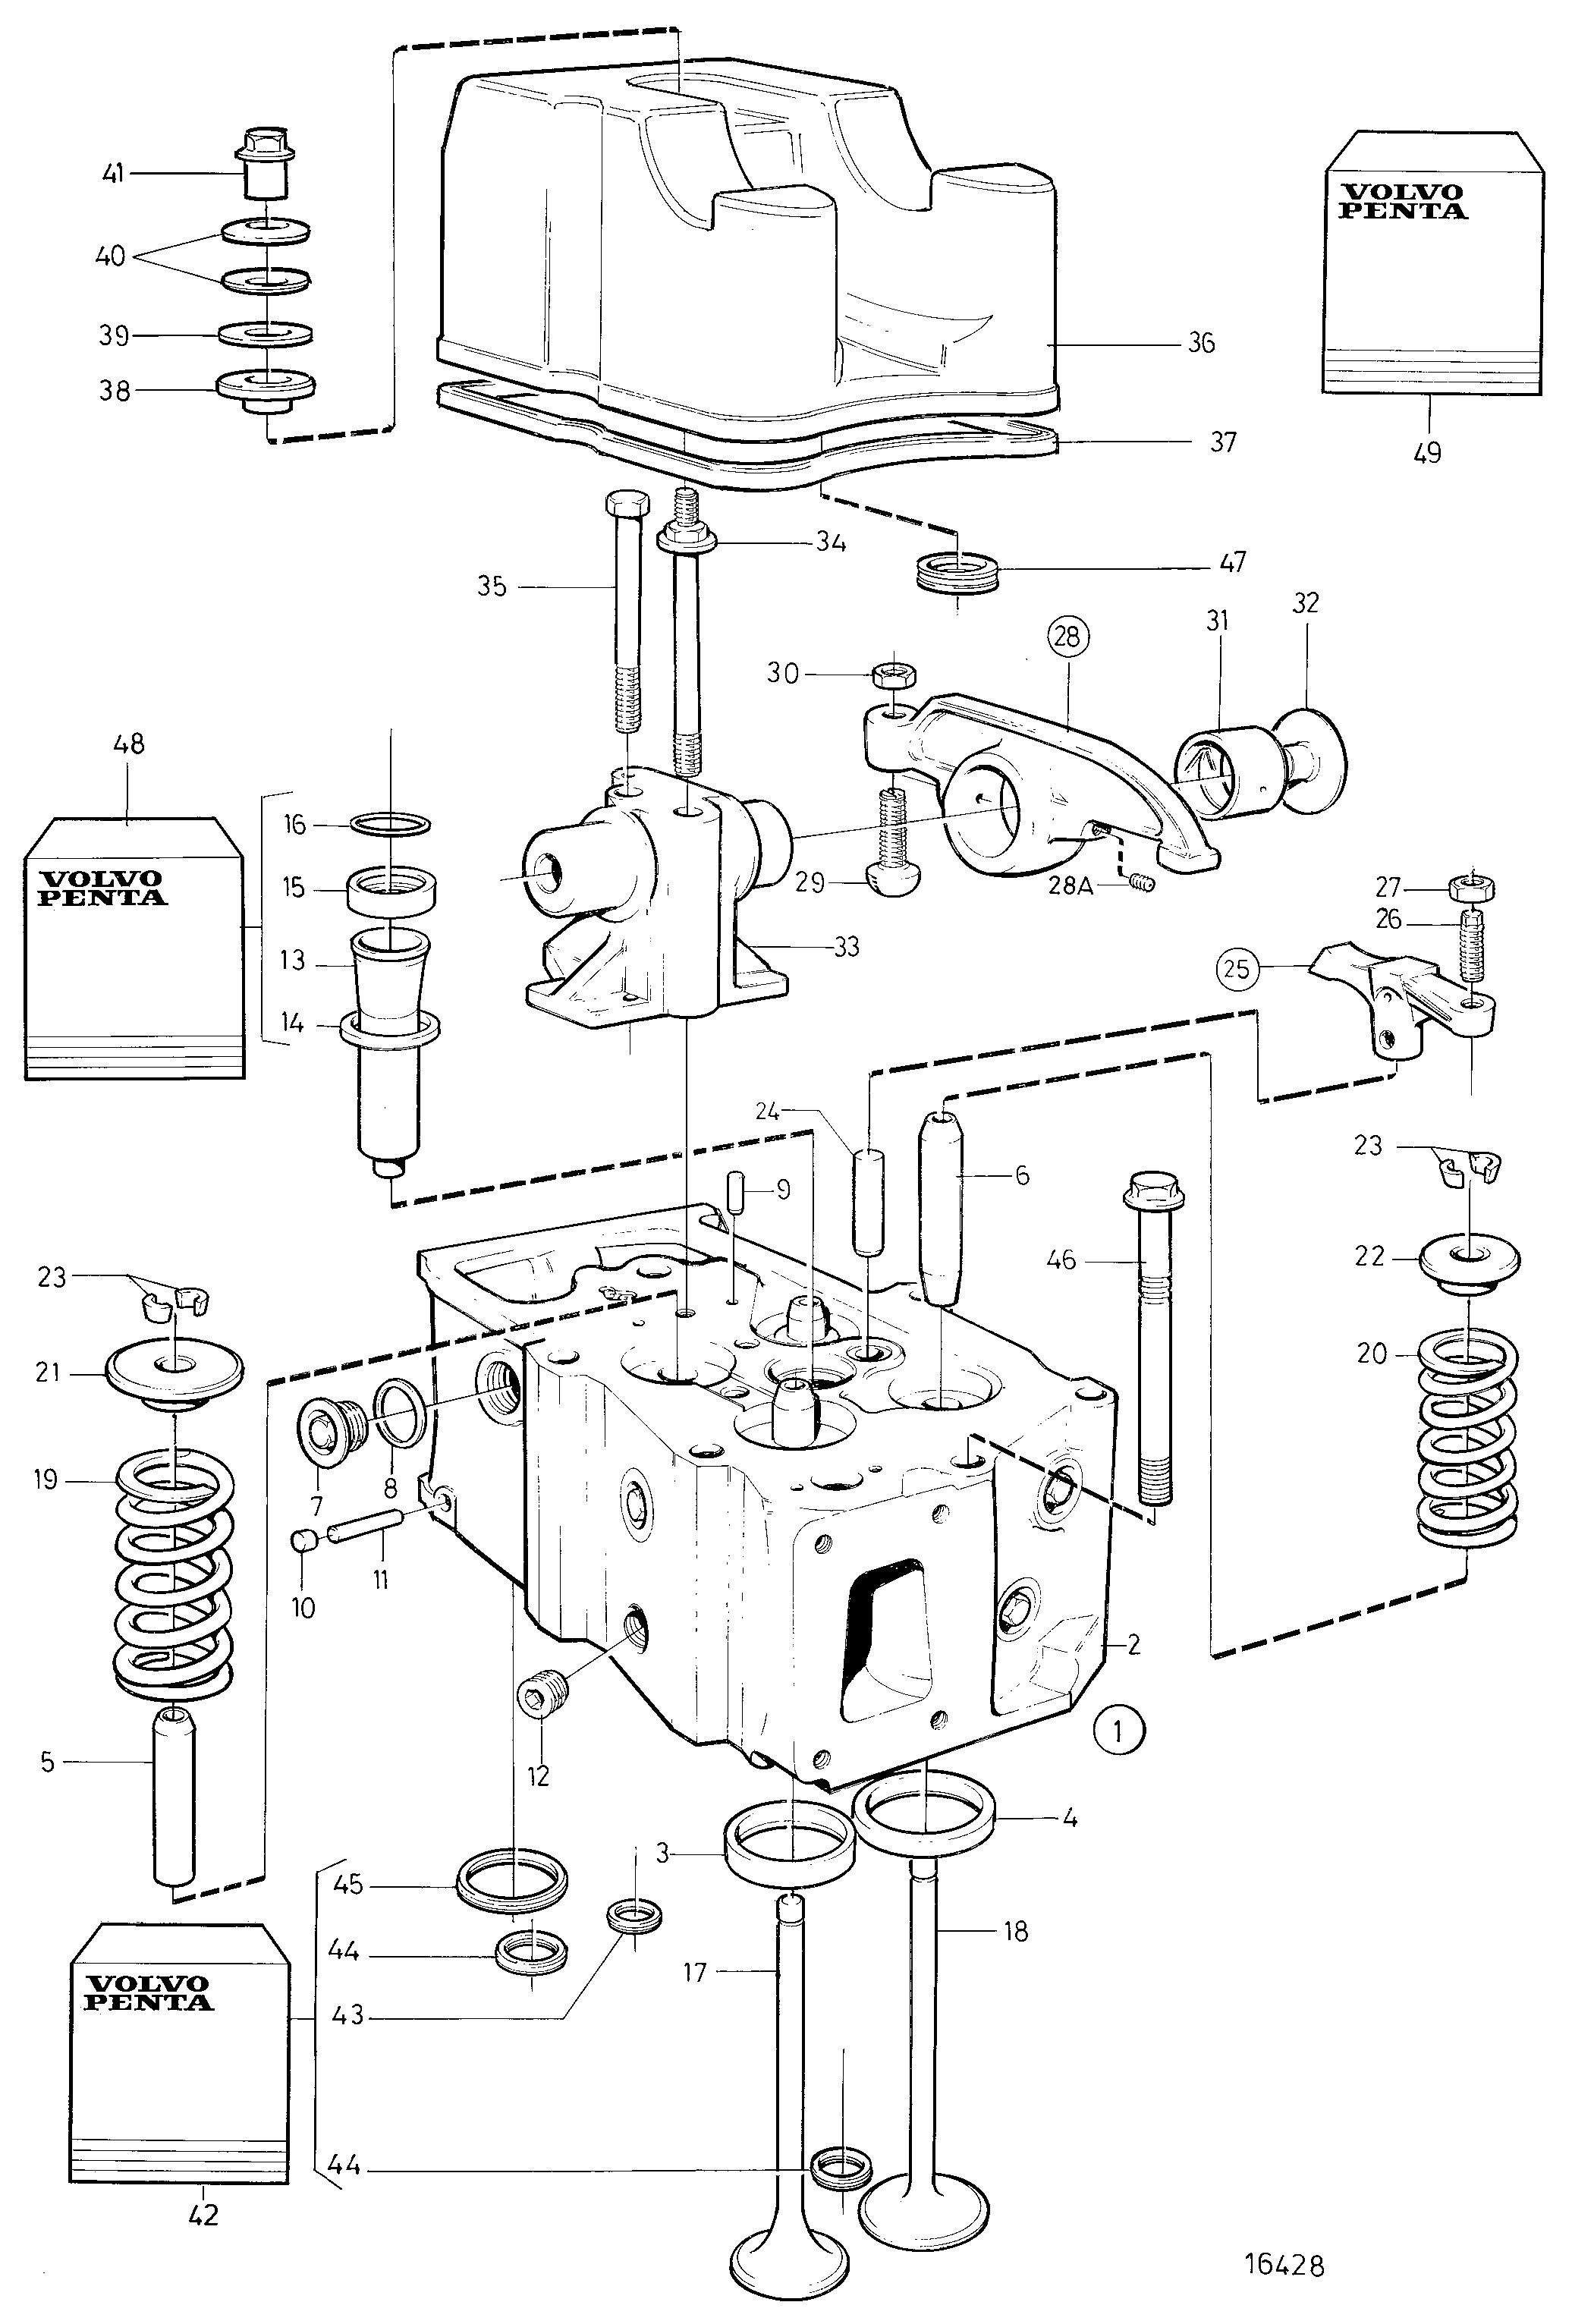 volvo penta engine diagram volvo penta engine cylinder head a tamd162c c of volvo penta engine diagram